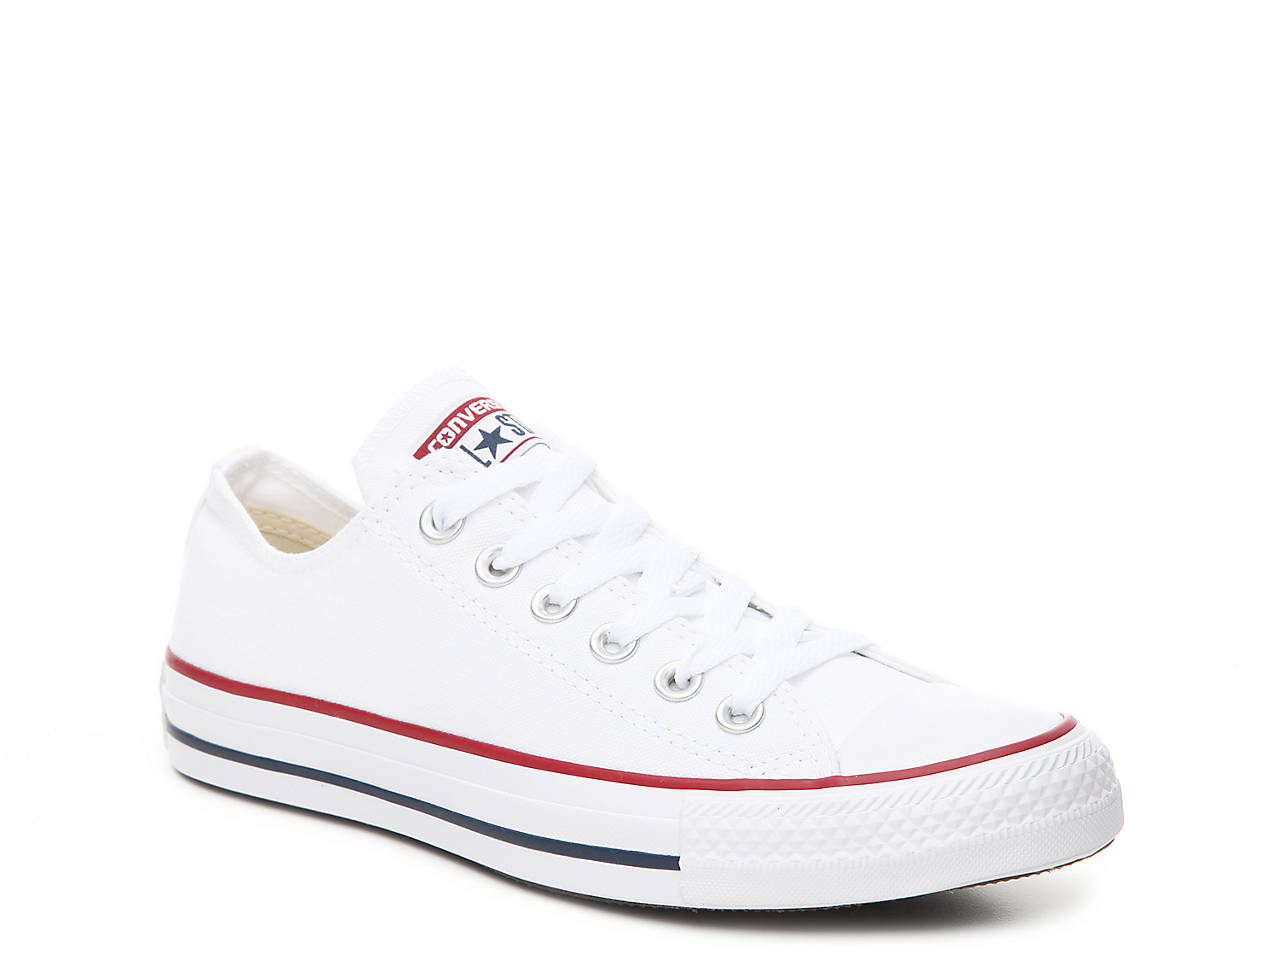 Converse Chuck Taylor All Star Sneaker - Women s Women s Shoes  9e4c8189b